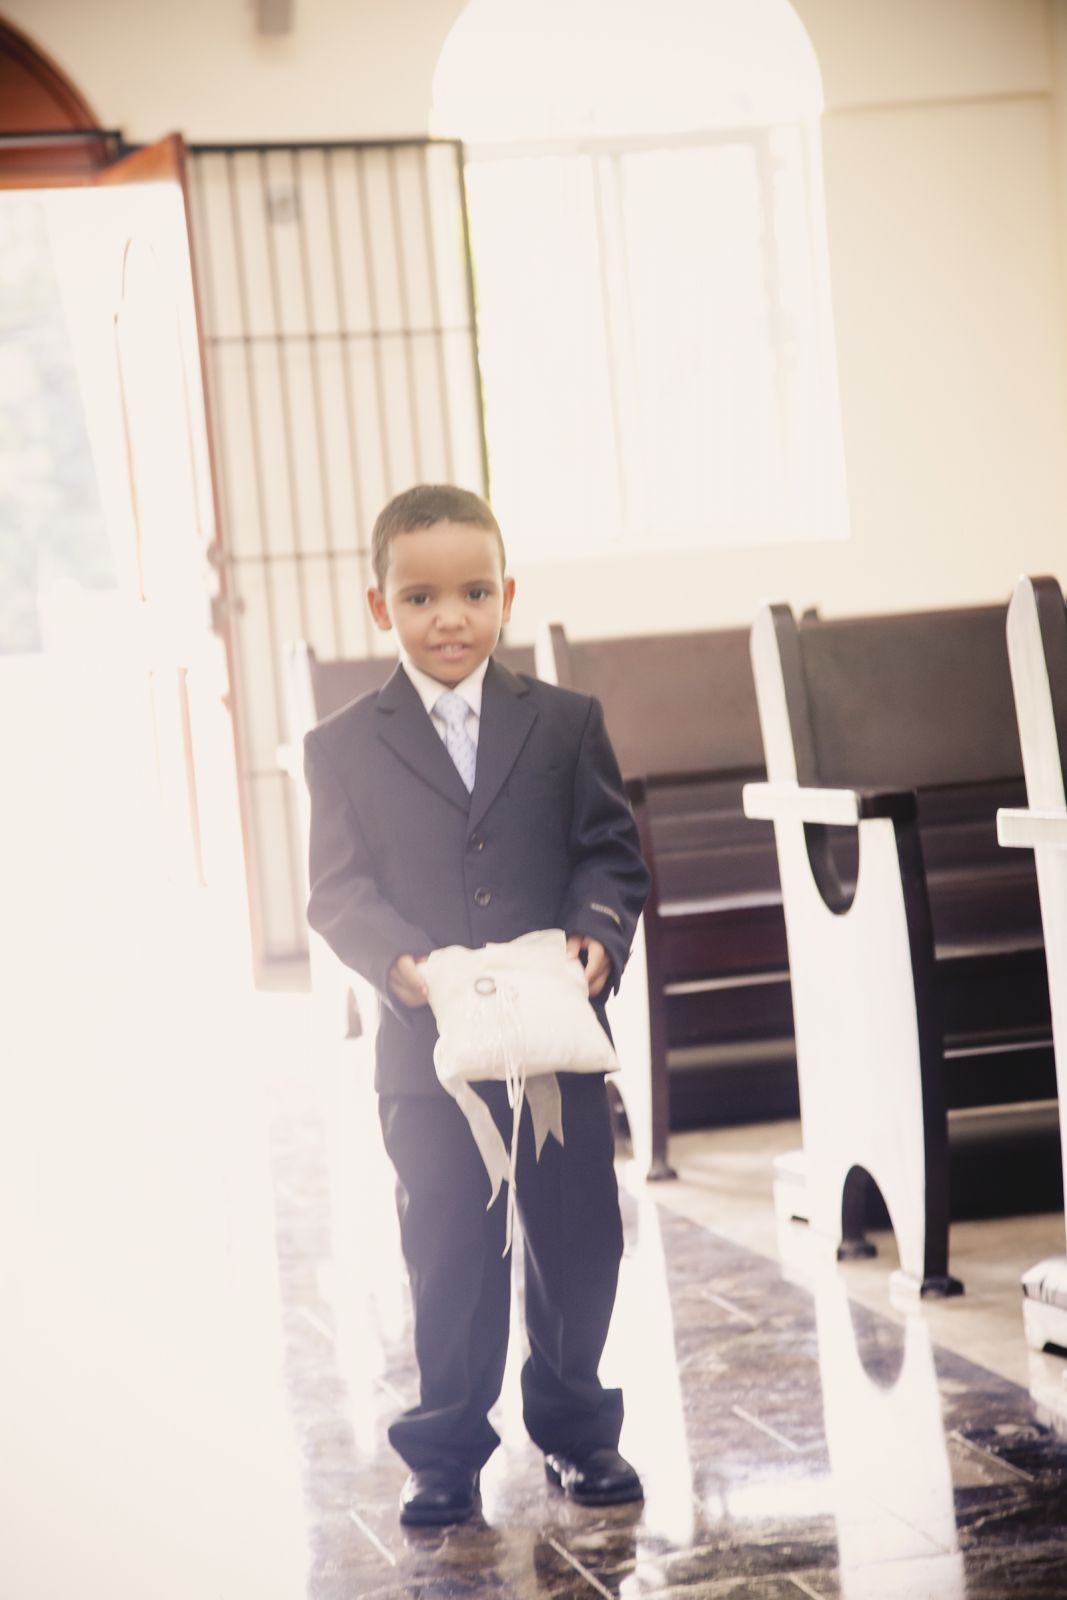 Ring bearer- and yes, he walked half way in, found his parents and sat with them instead of going all the way down lol